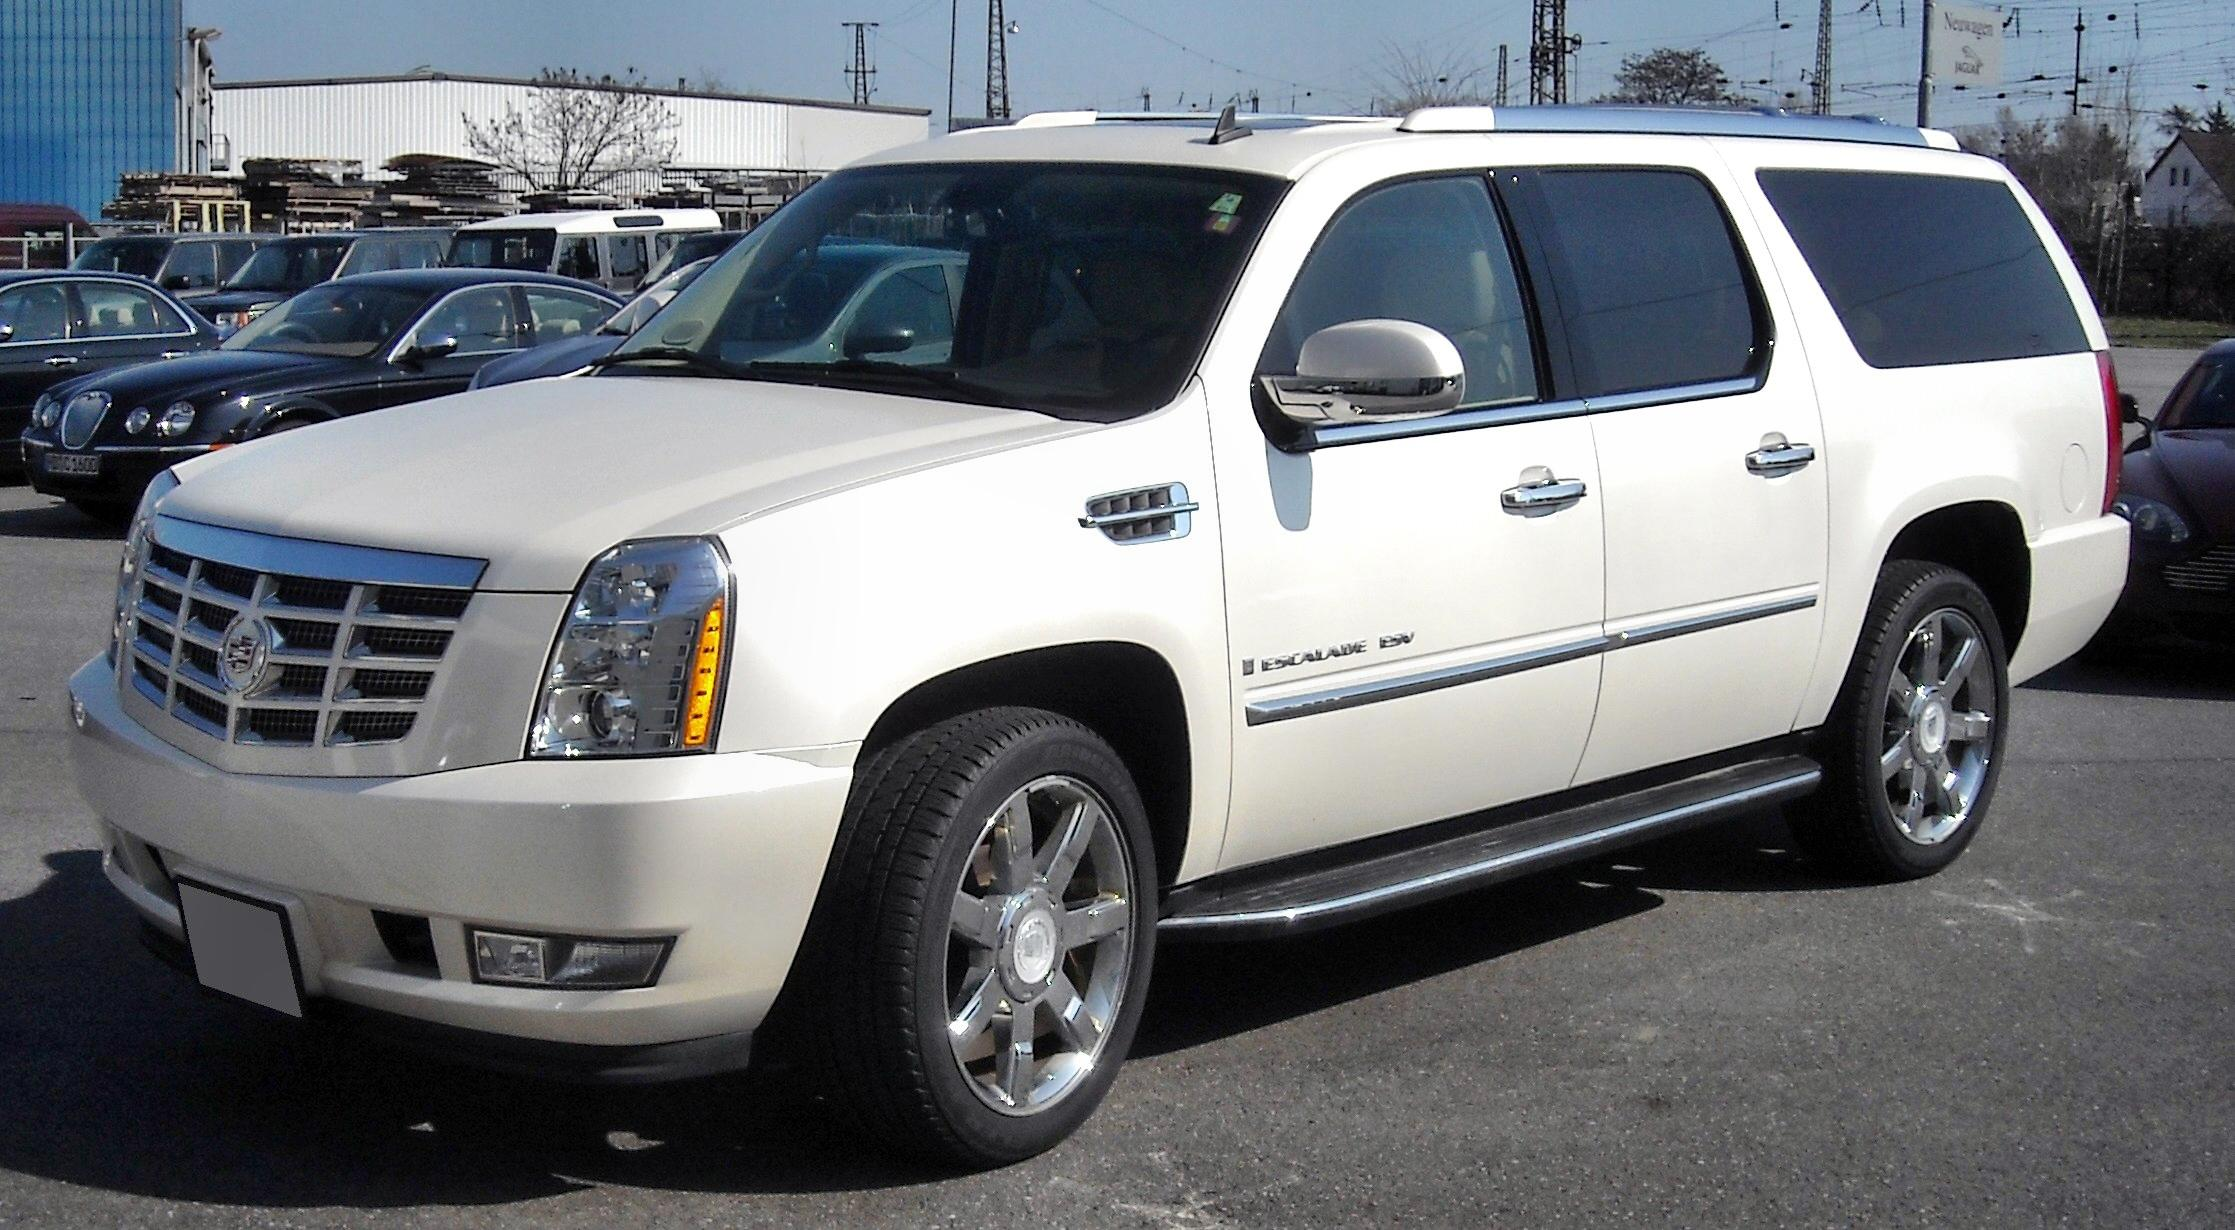 tx esv revo escalade antonio for clear sale san city in automotive cadillac choice